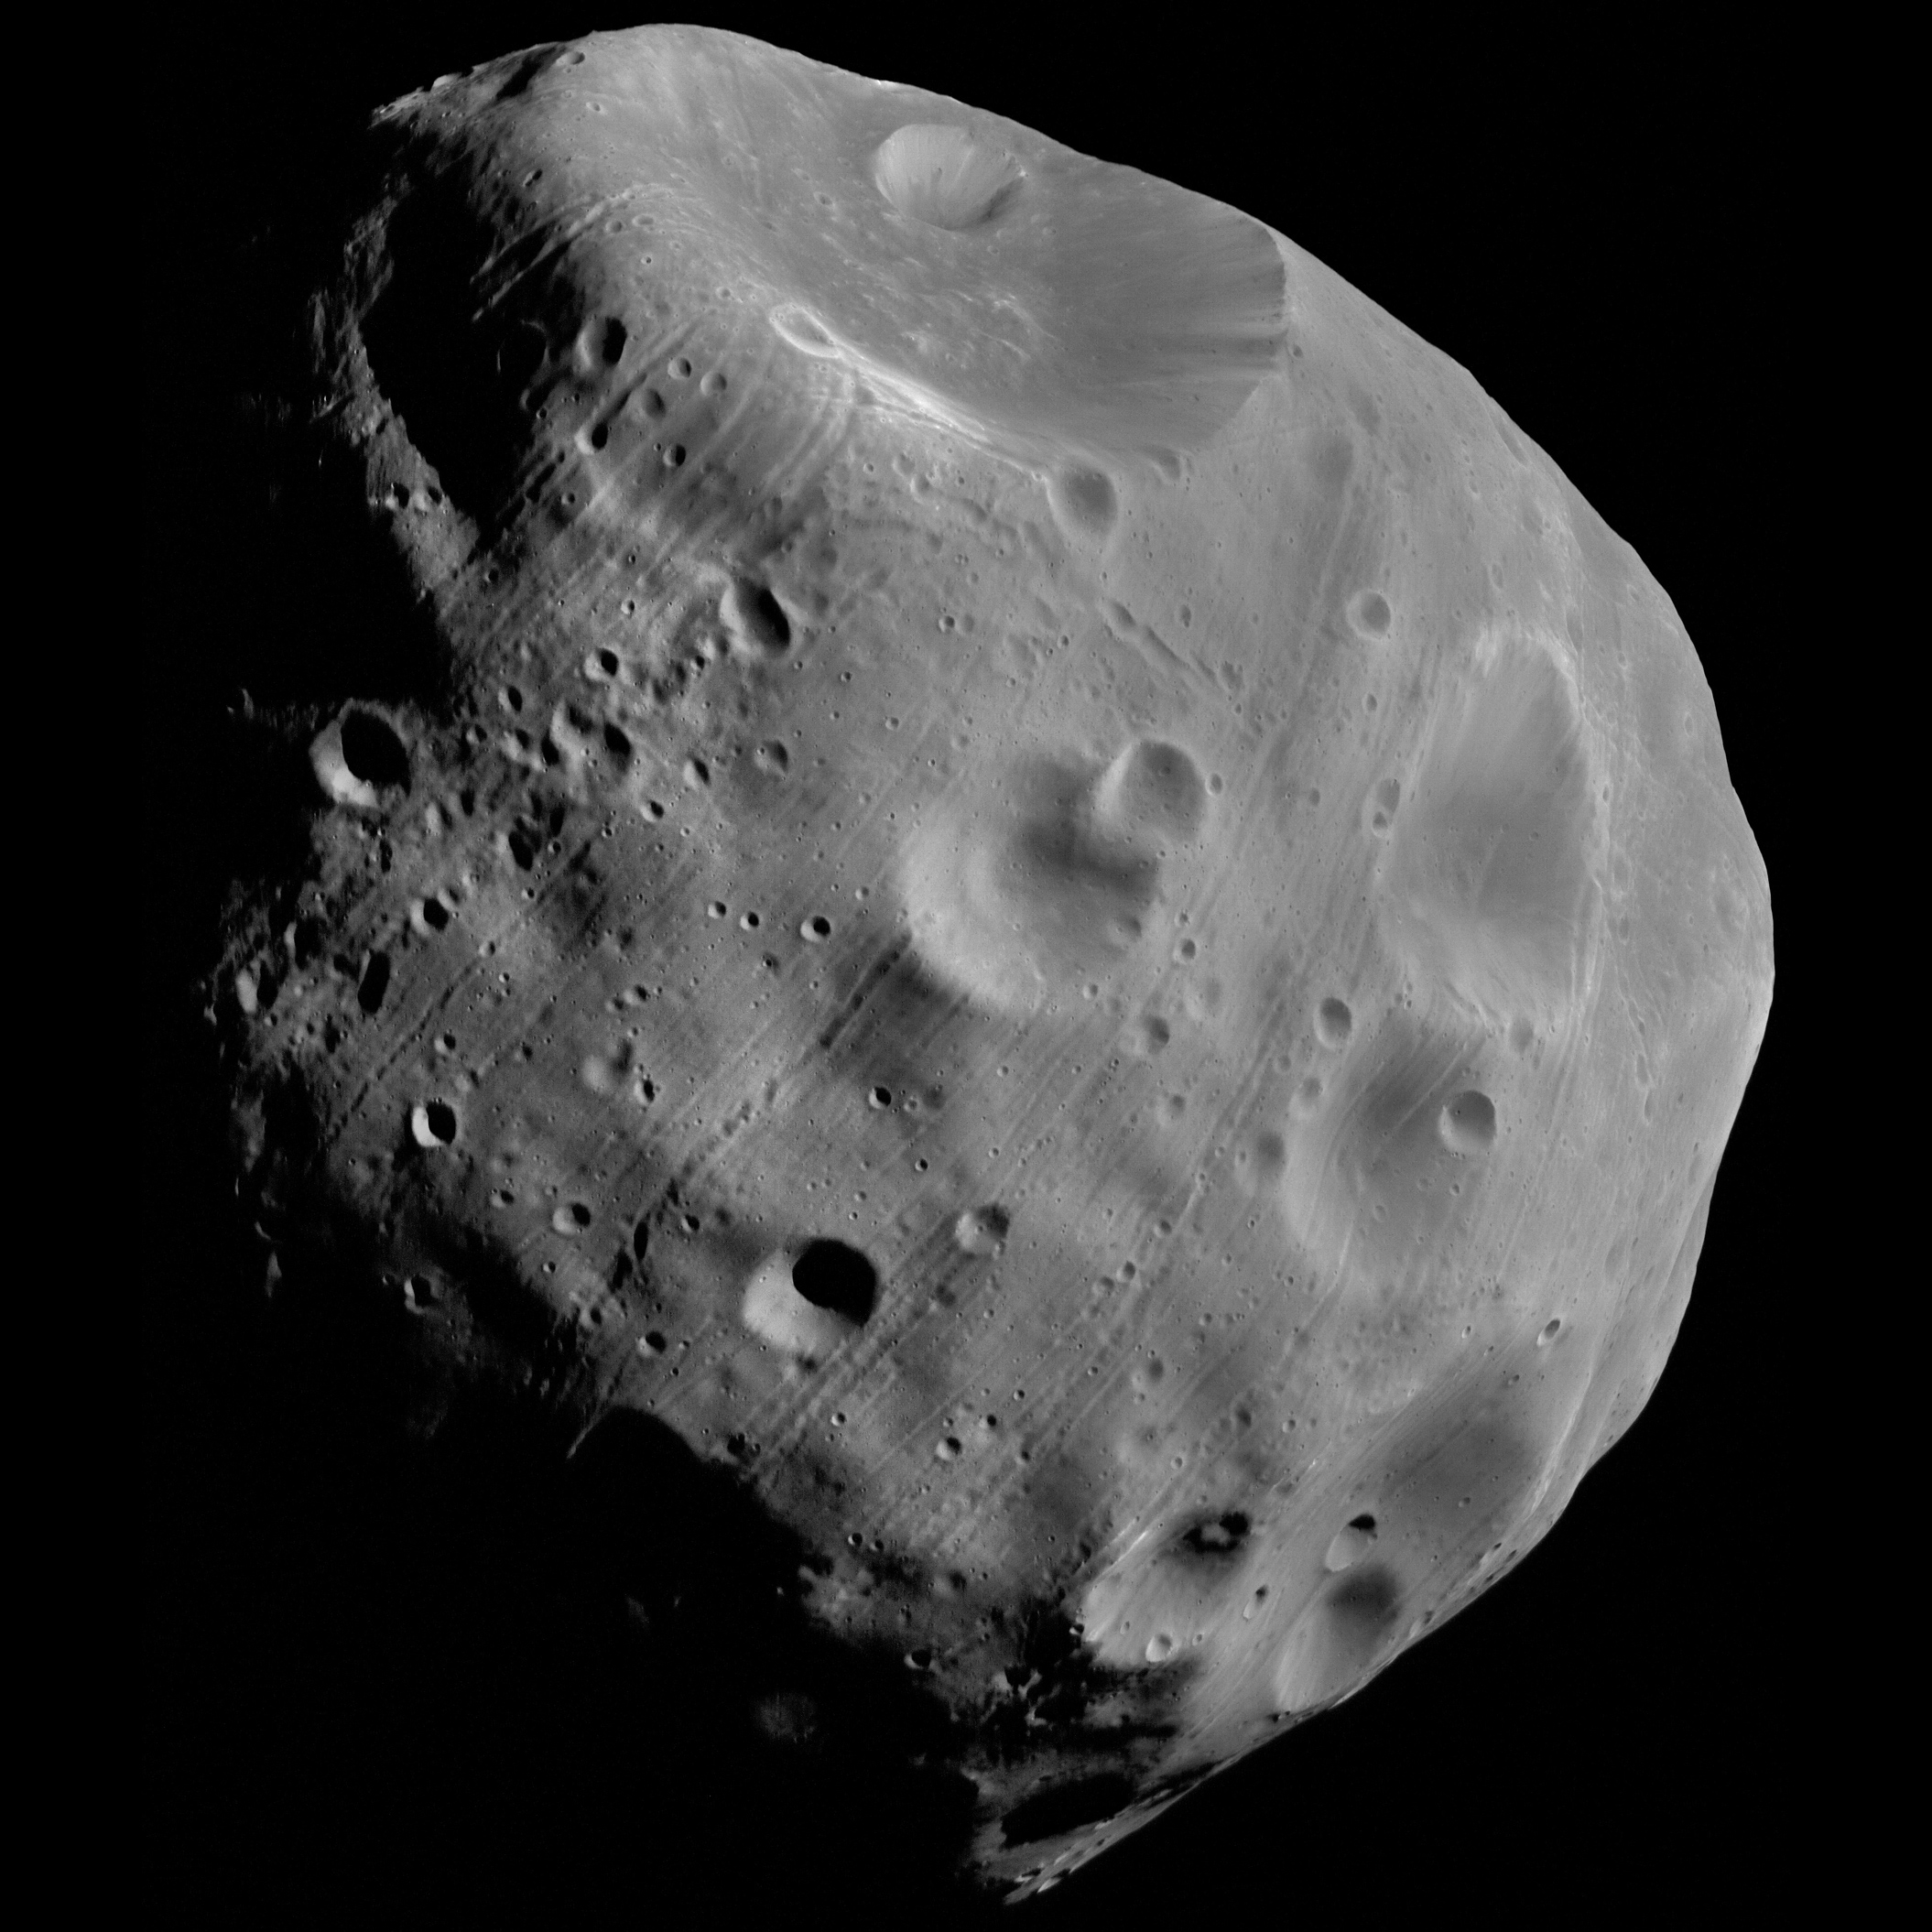 Phobos from Mars Express orbit 7